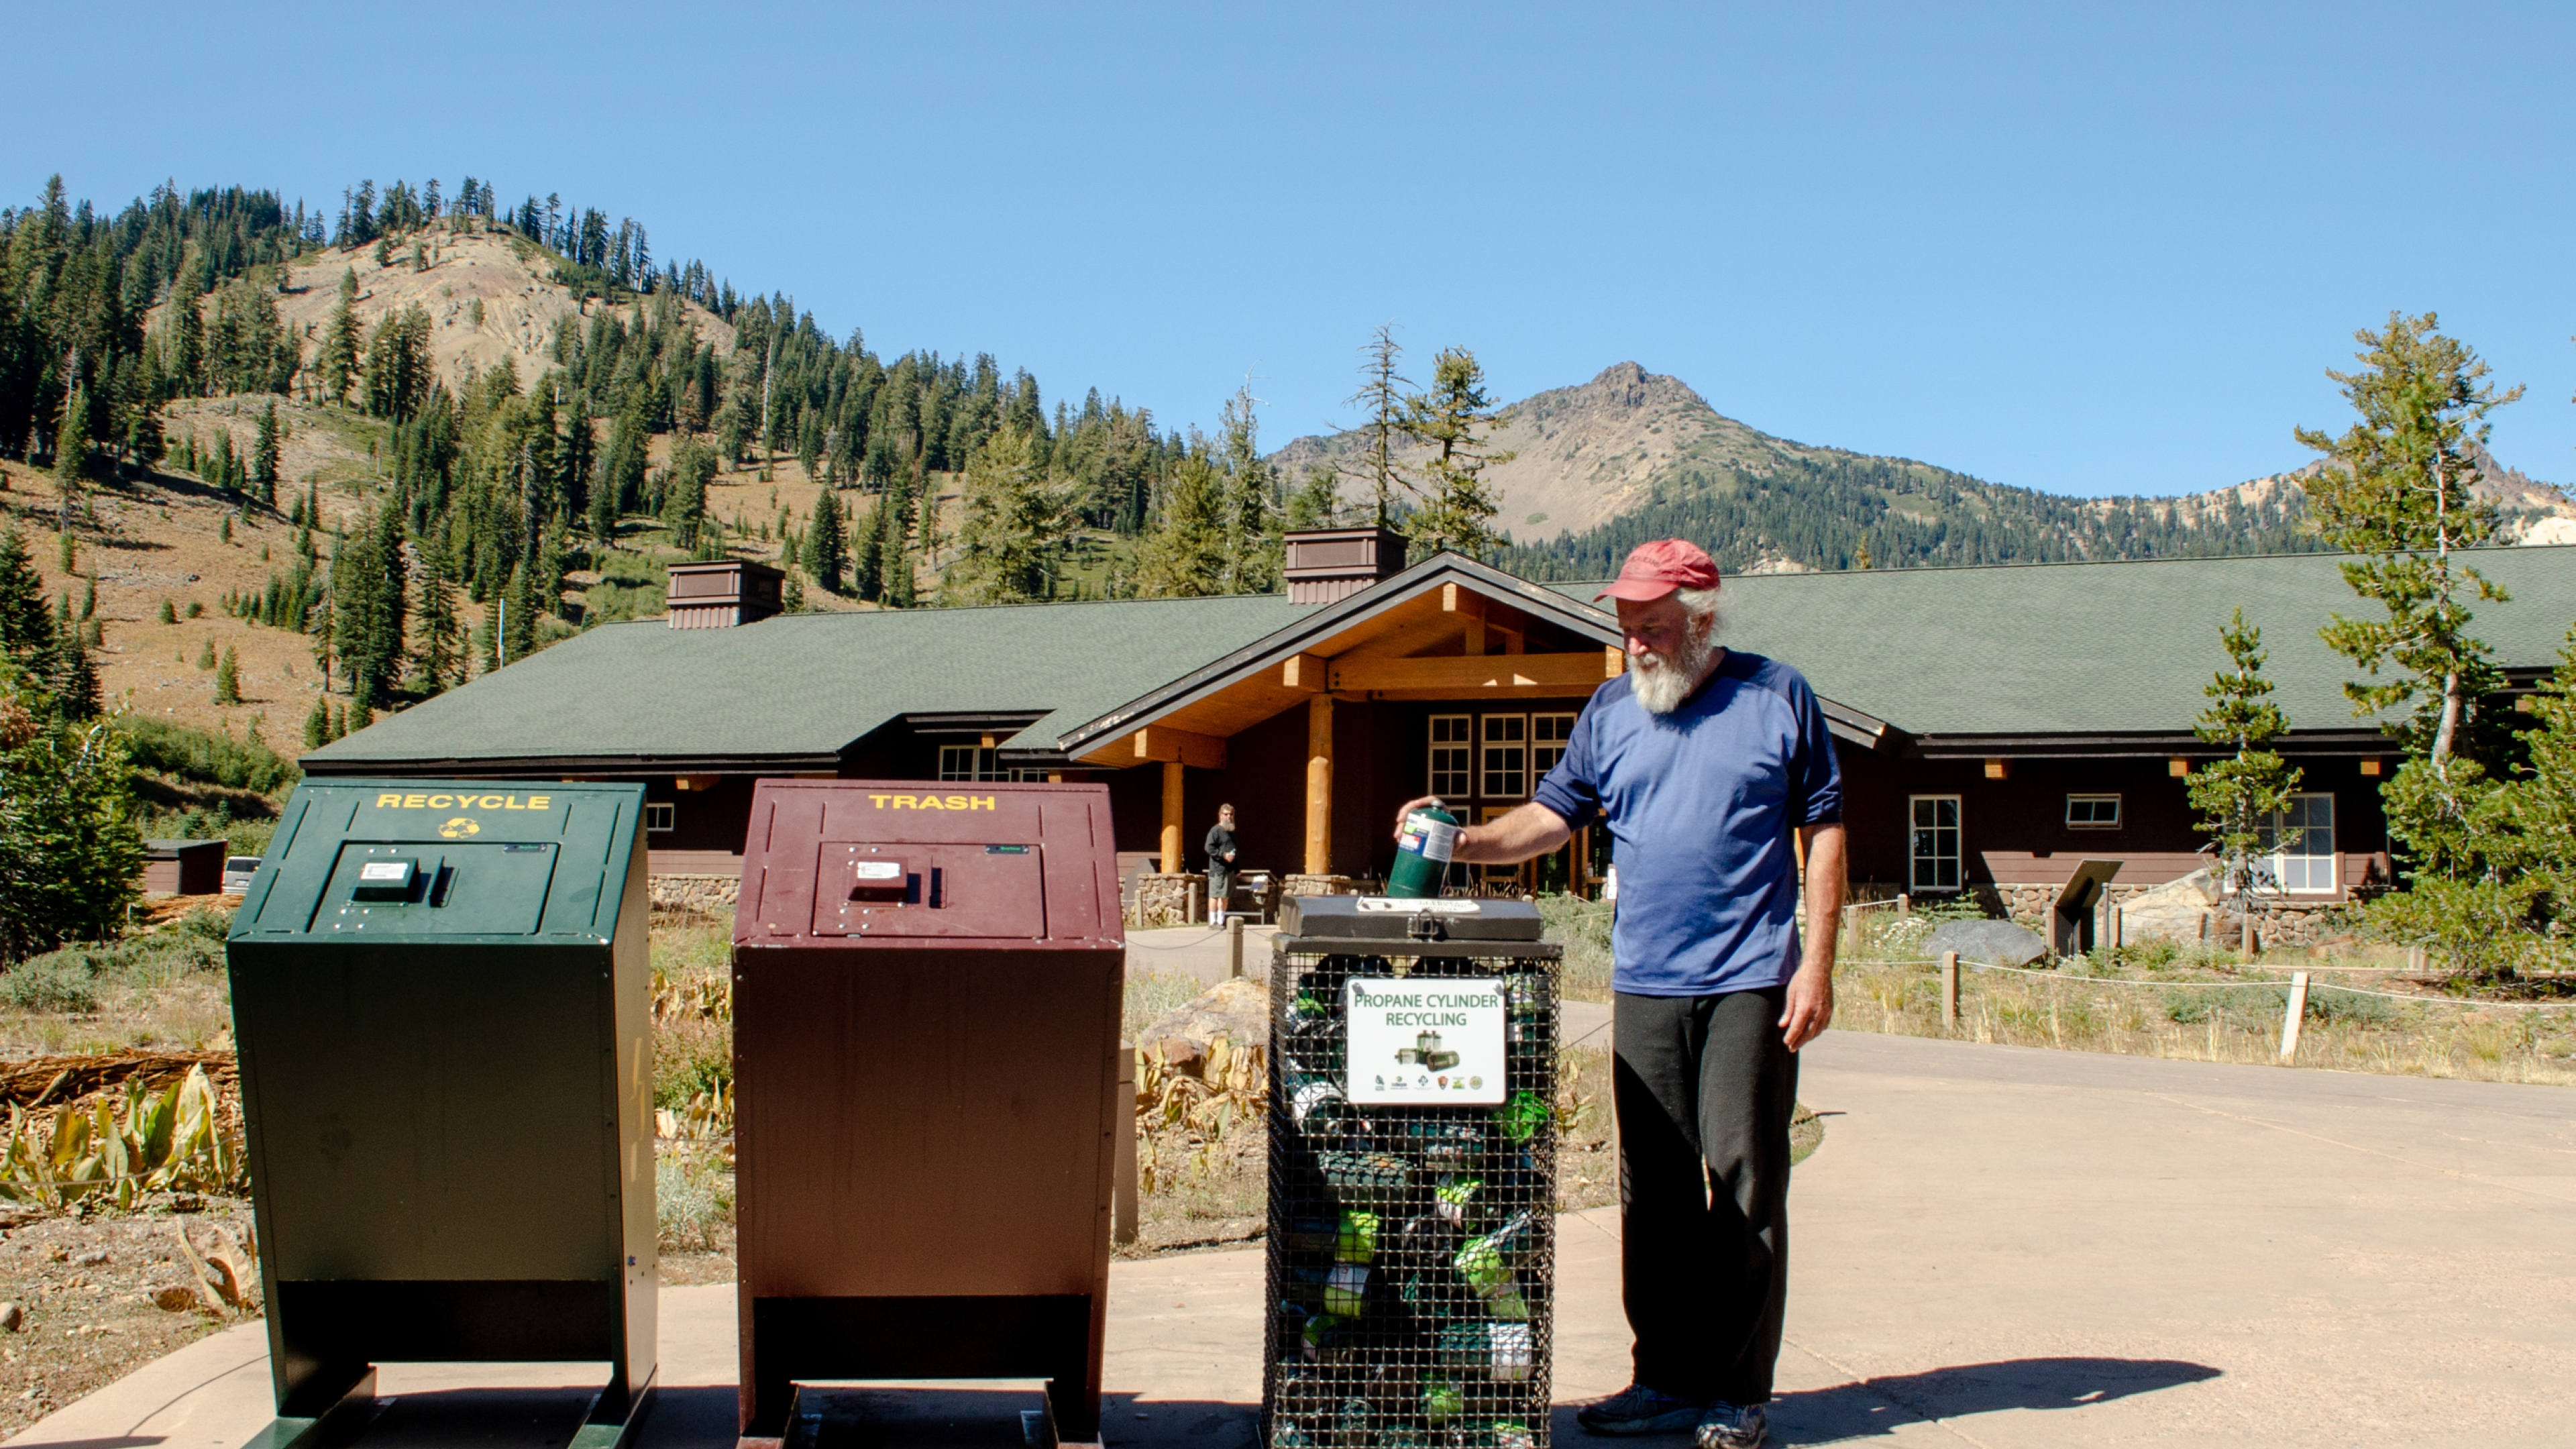 Man utilizing outdoor recycling station at Lassen Volcanic National Park